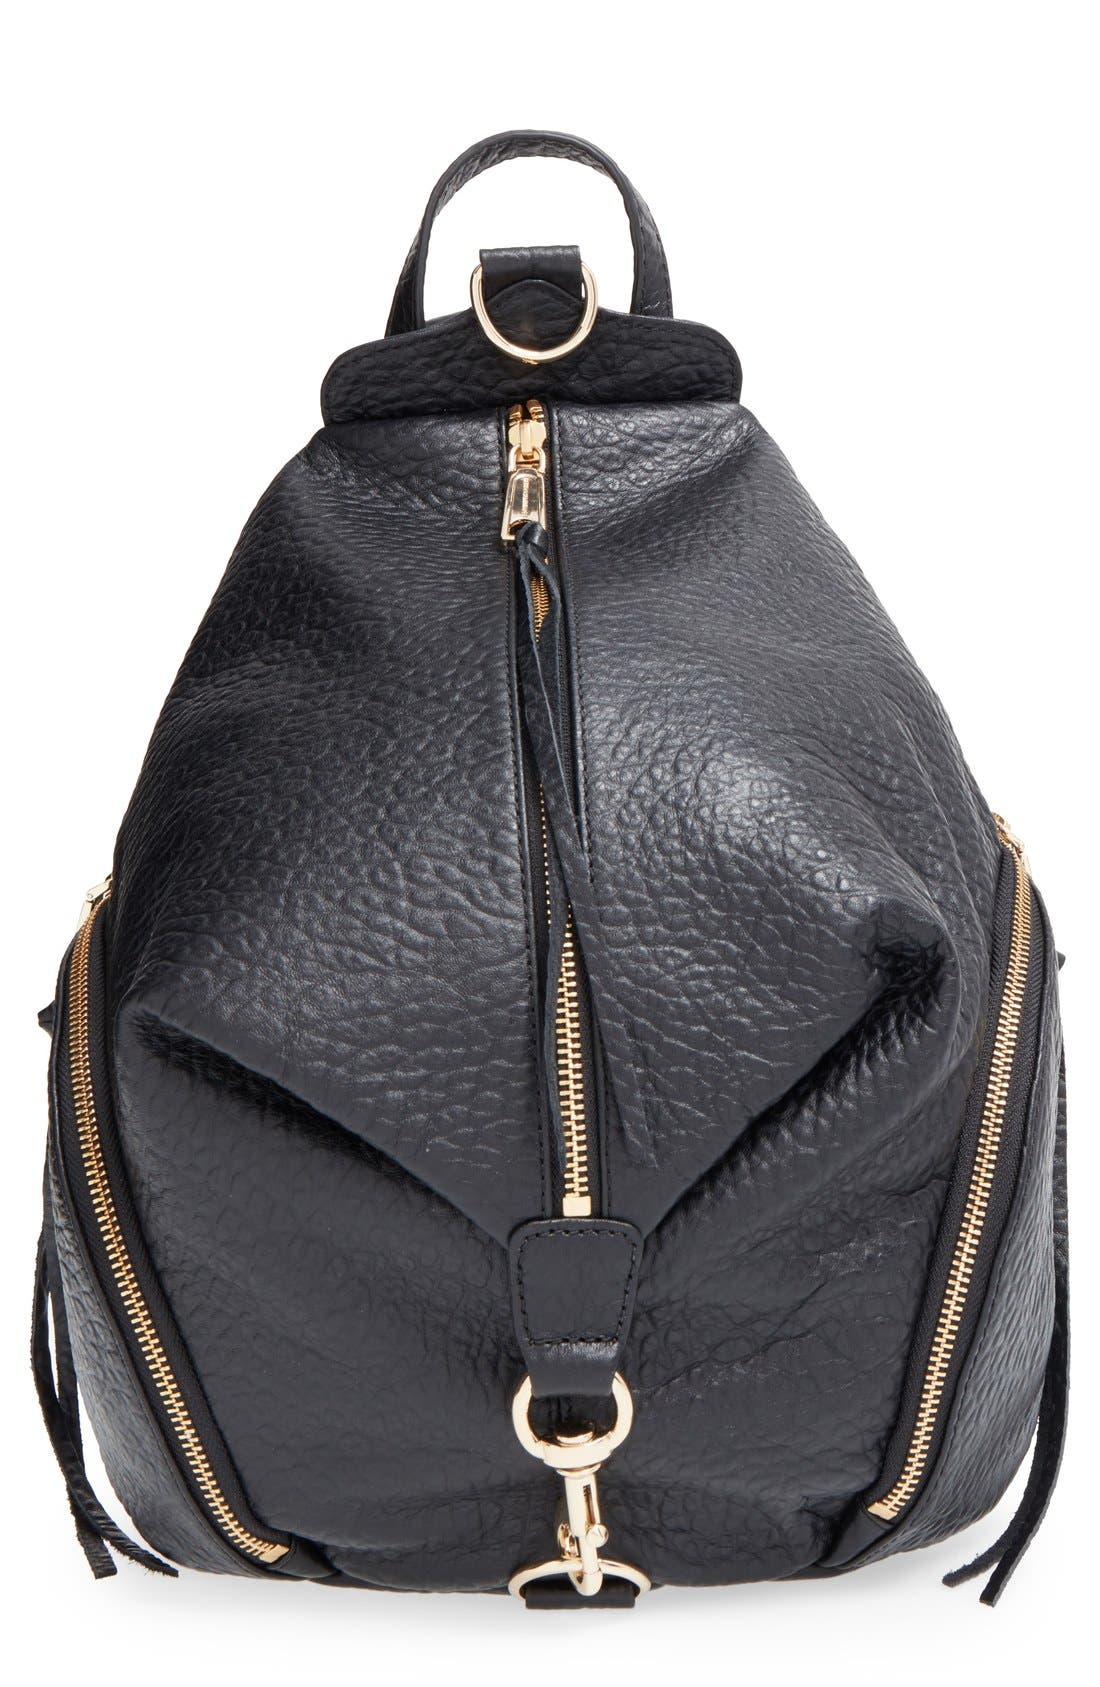 Alternate Image 1 Selected - Rebecca Minkoff 'Julian' Backpack